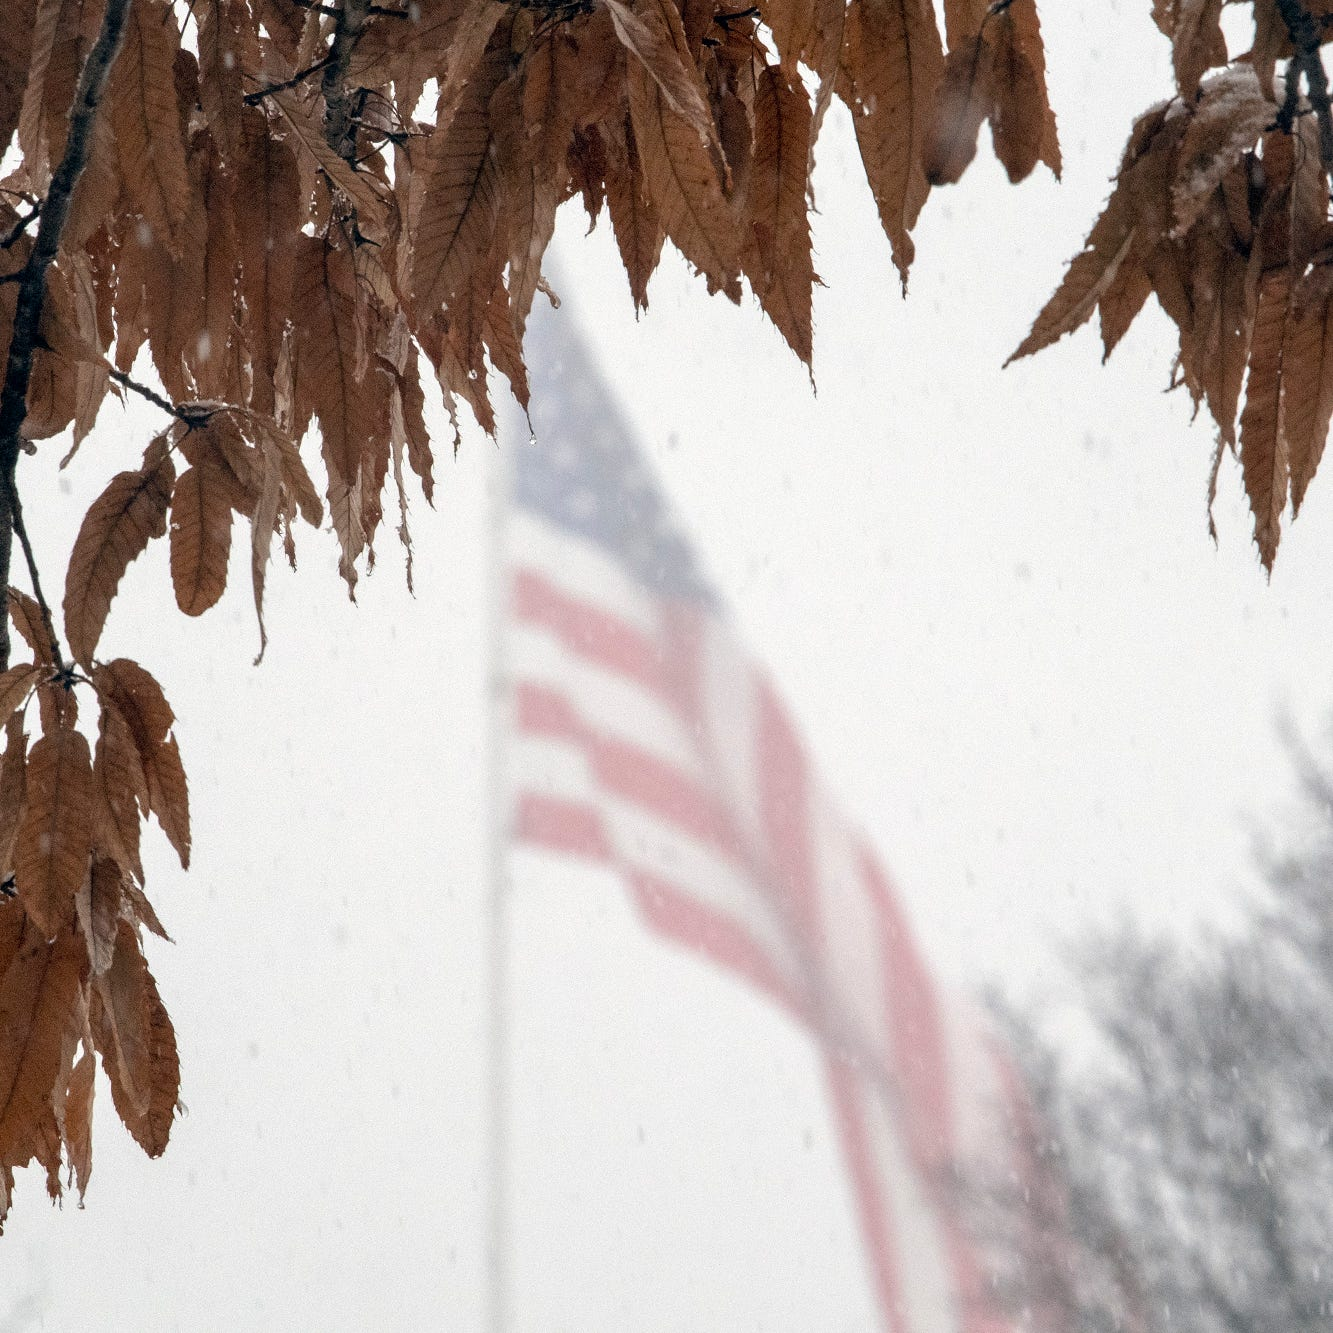 'Messy out there': Central Pa. to get 5-7 inches of snow